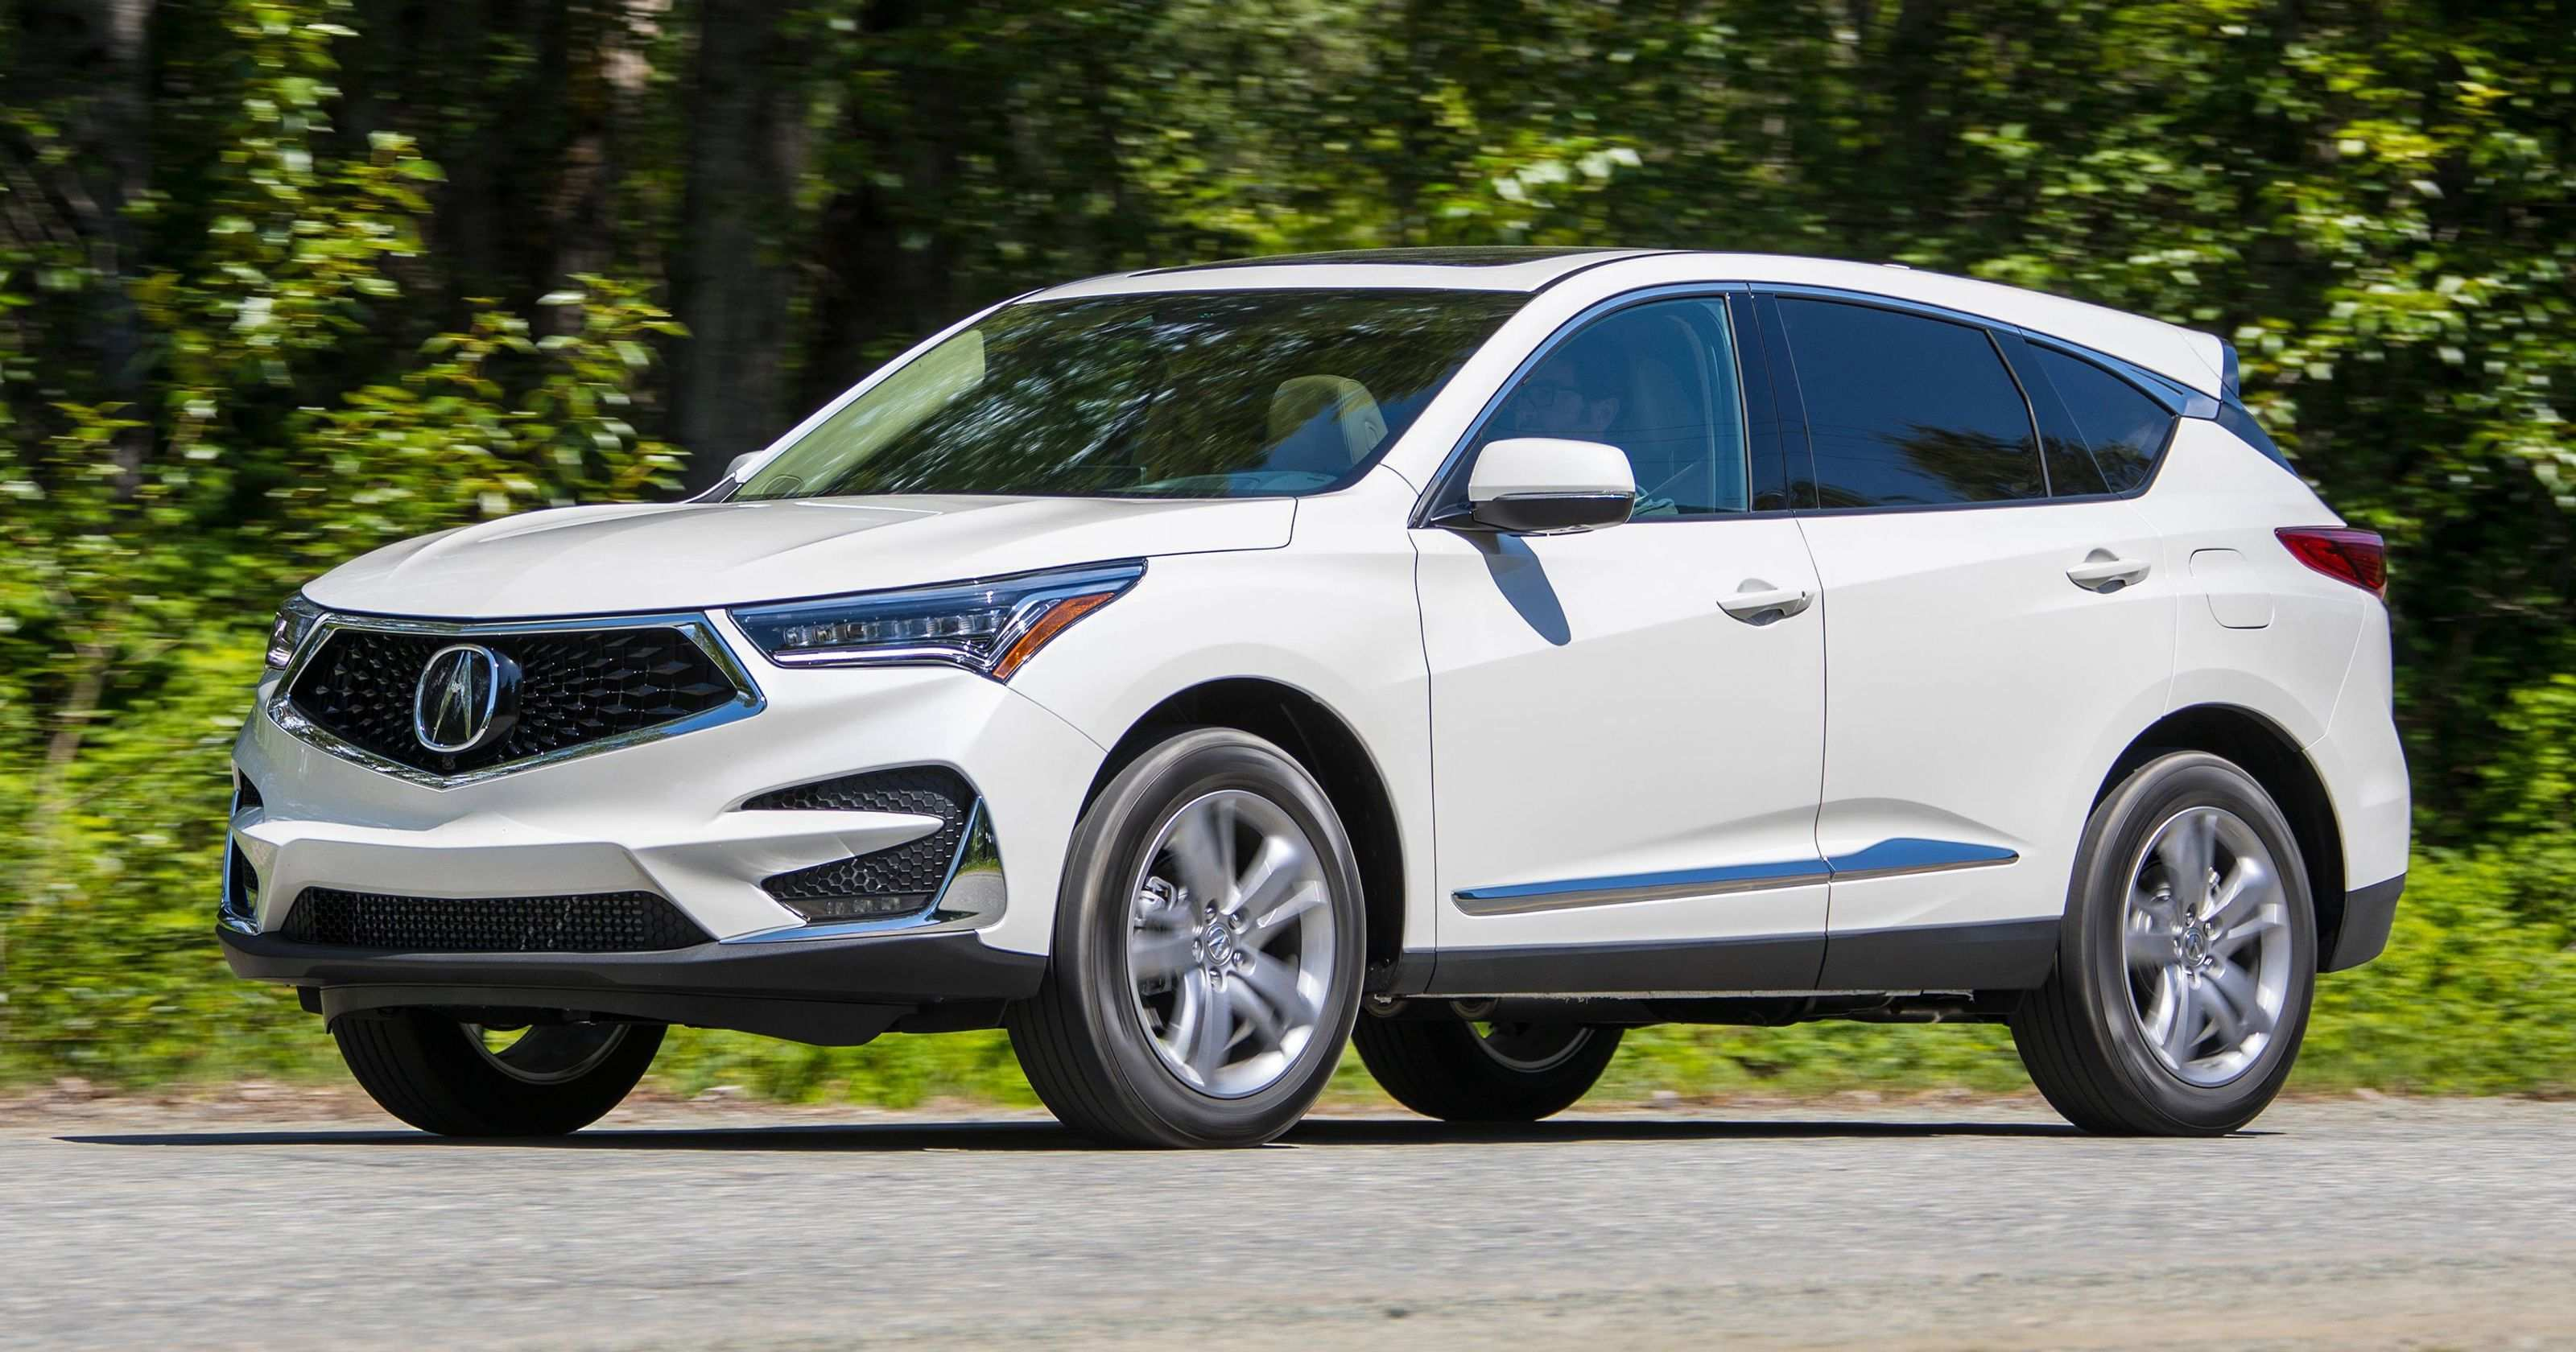 69 Great 2019 Acura 2019 Overview by 2019 Acura 2019